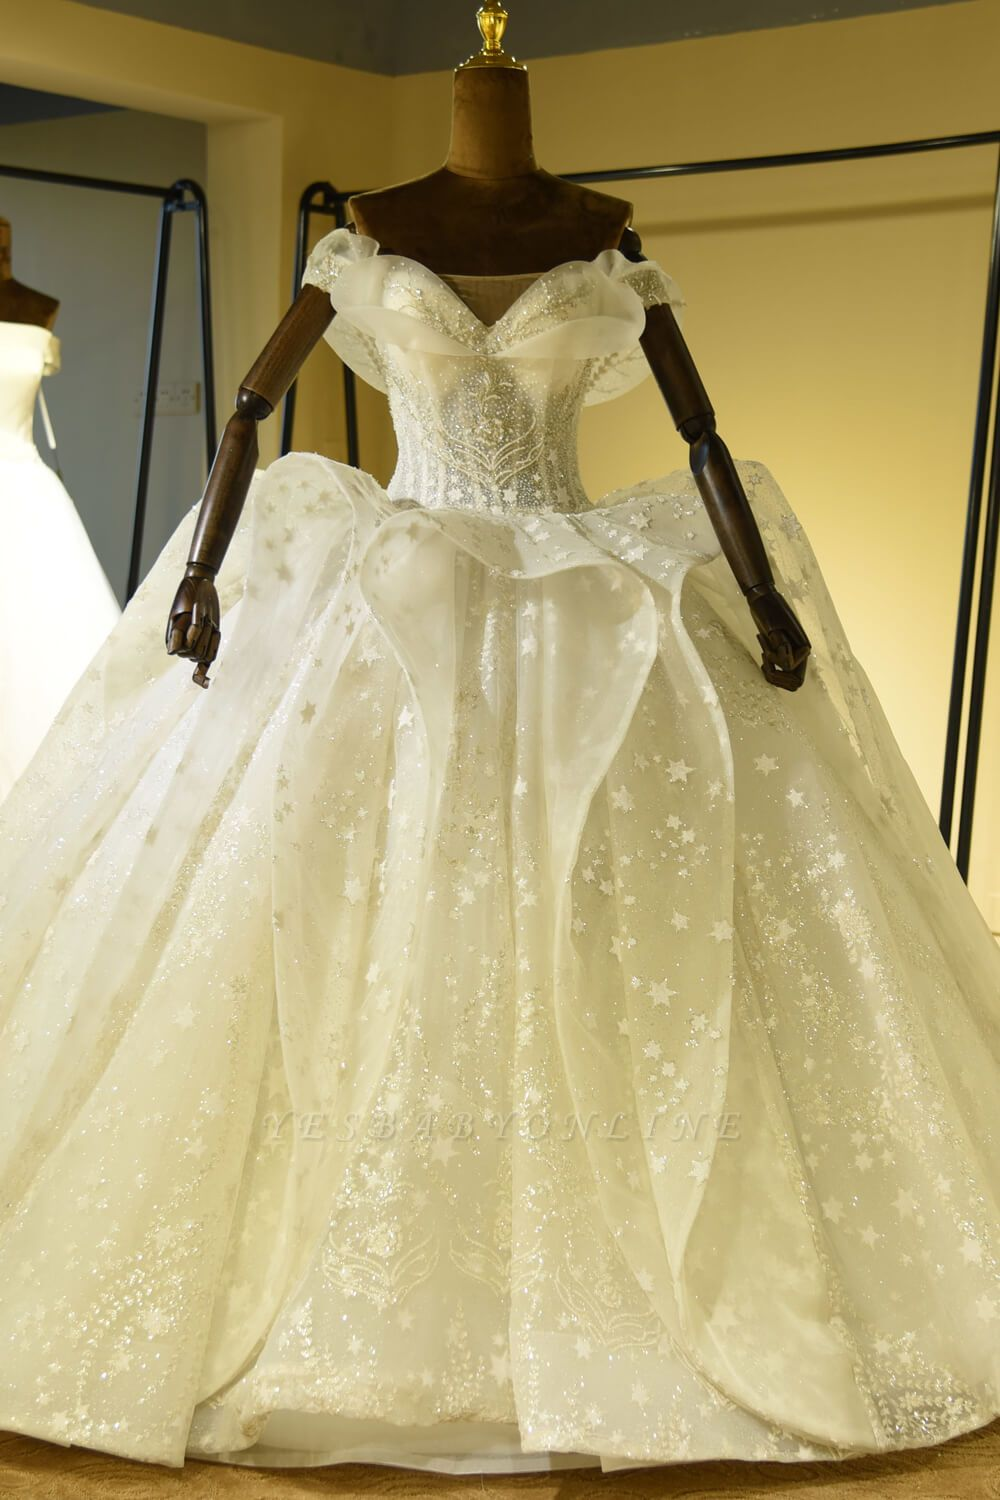 Gorgeous Lace-up Tulle Ball Gown Wedding Dress | Haute Couture Bridal Gowns Series